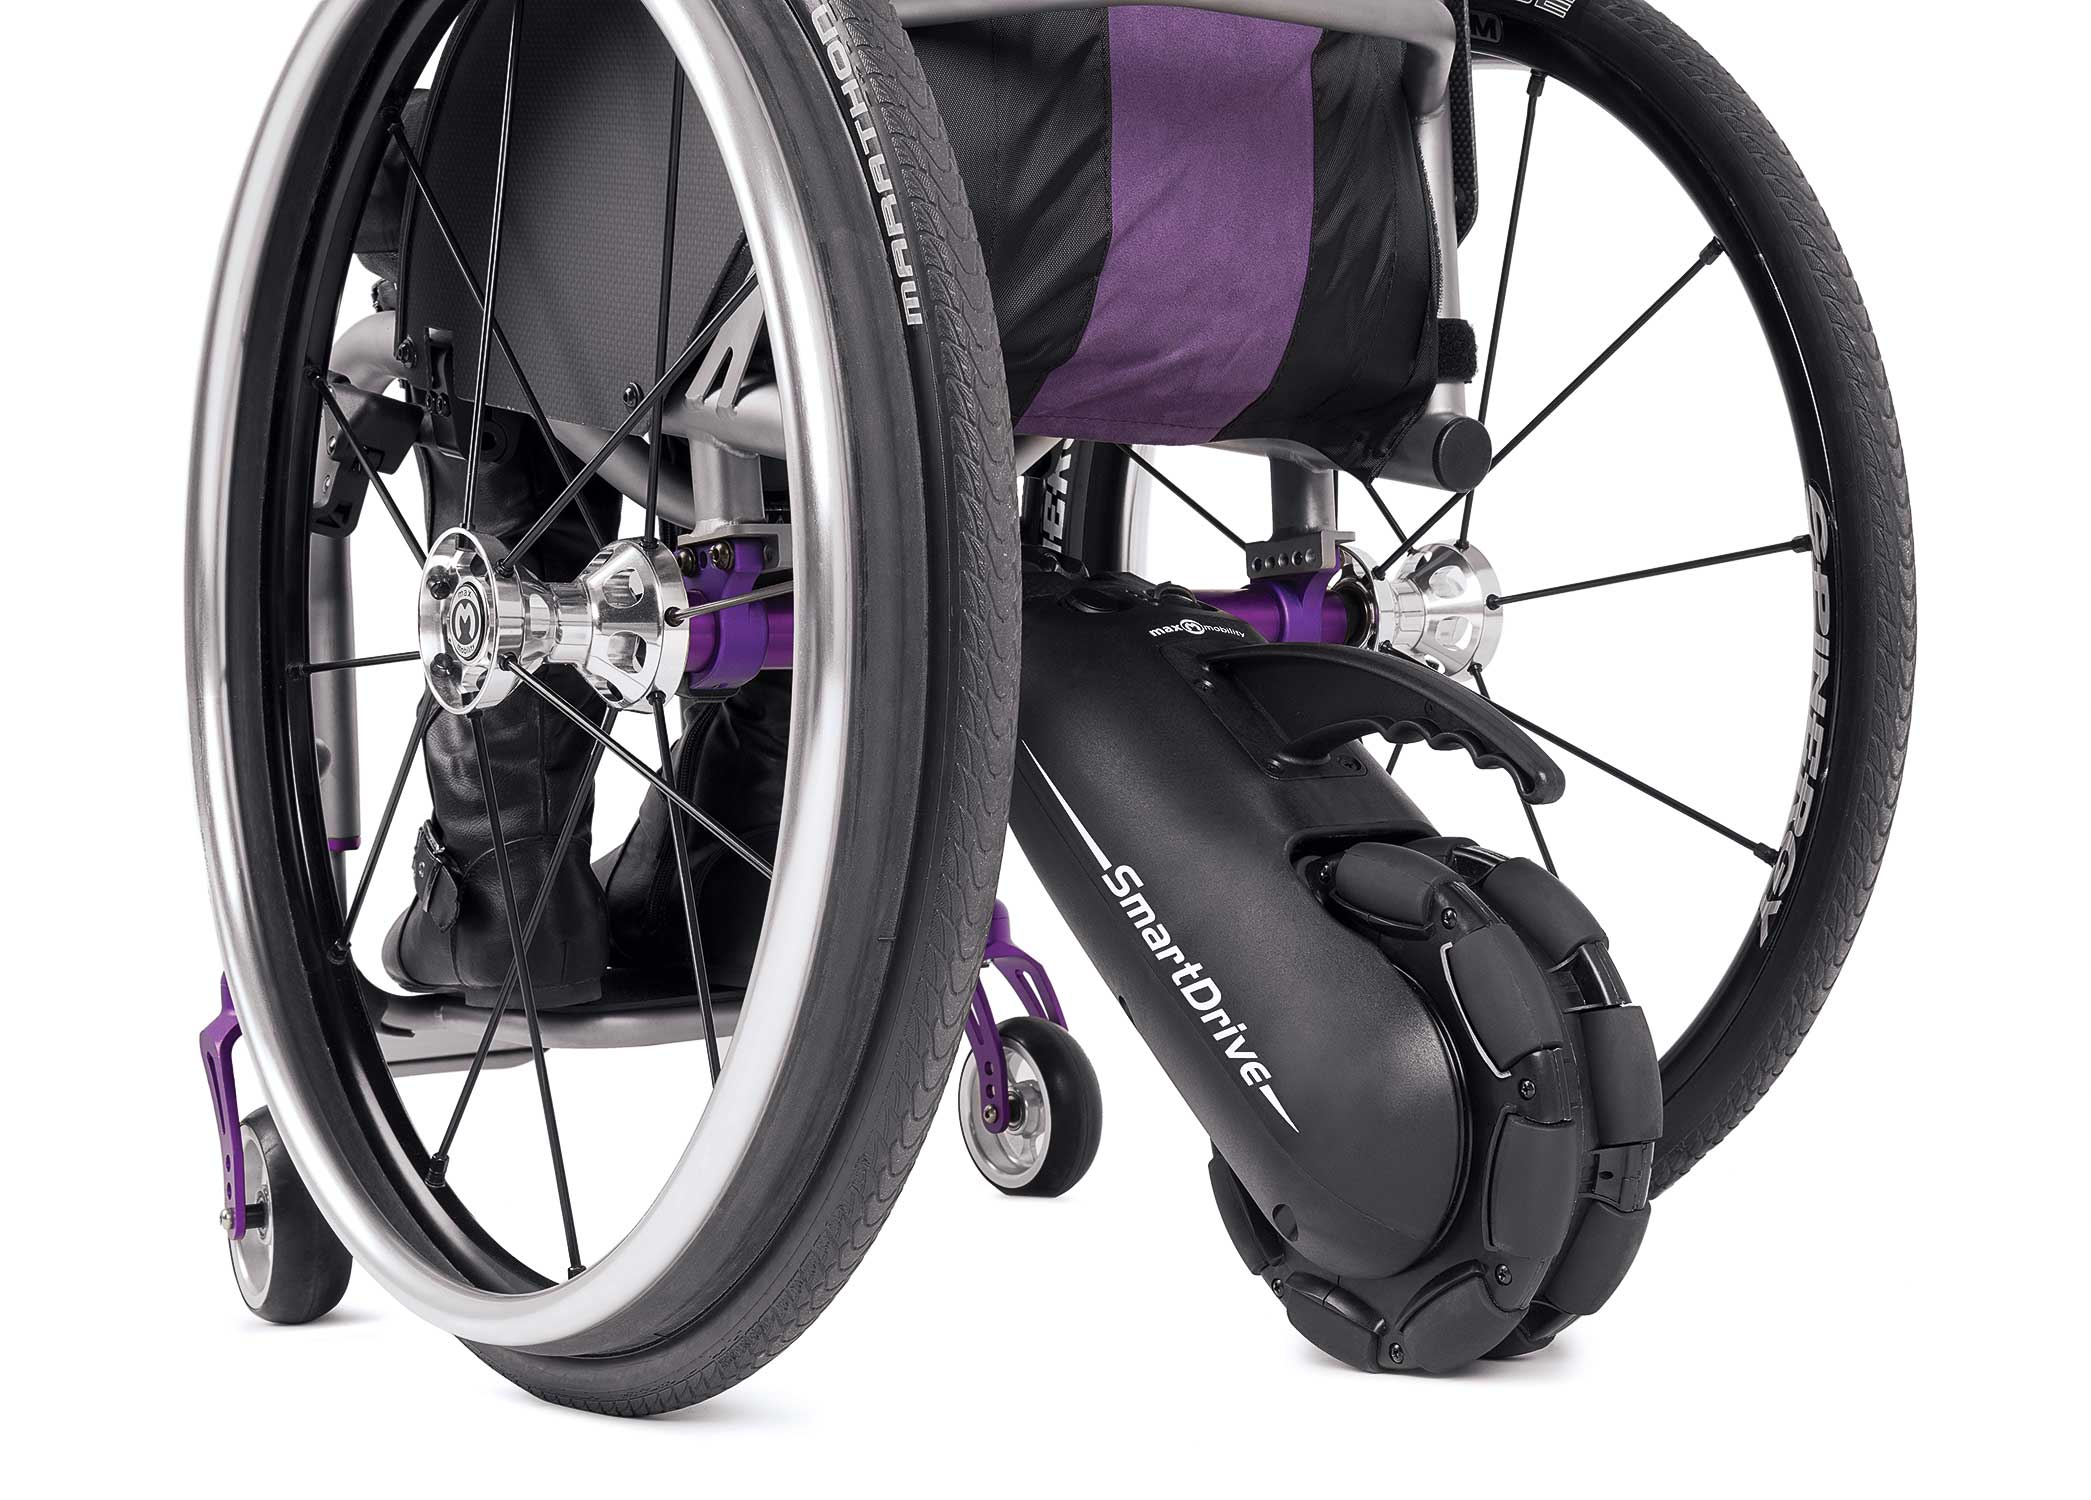 smartdrive-attached-to-wheelchair.jpg